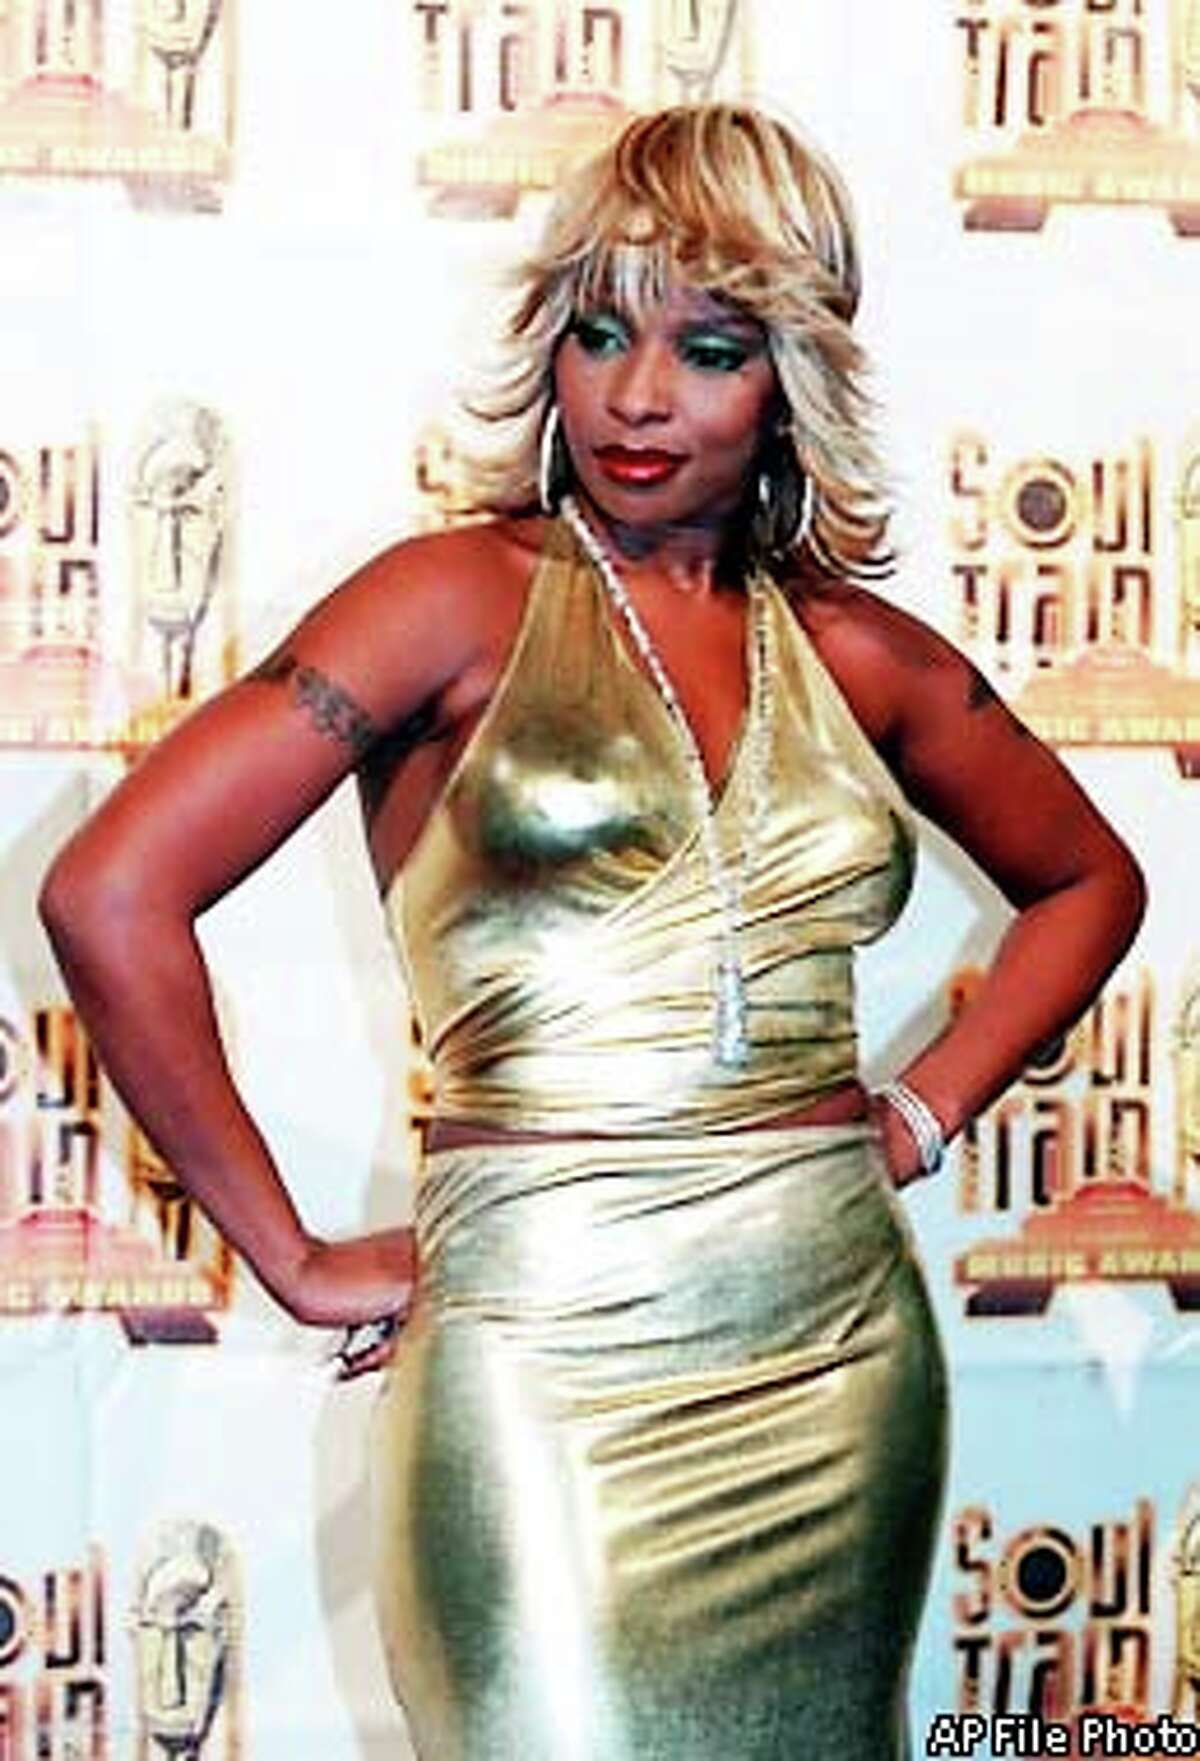 Mary J. Blige poses backstage at the 14th Annual Soul Train Music Awards at the Shrine Auditorium in Los Angeles Saturday night, March 4, 2000. Blige was honored as Female Entertainer of the Year. Her album